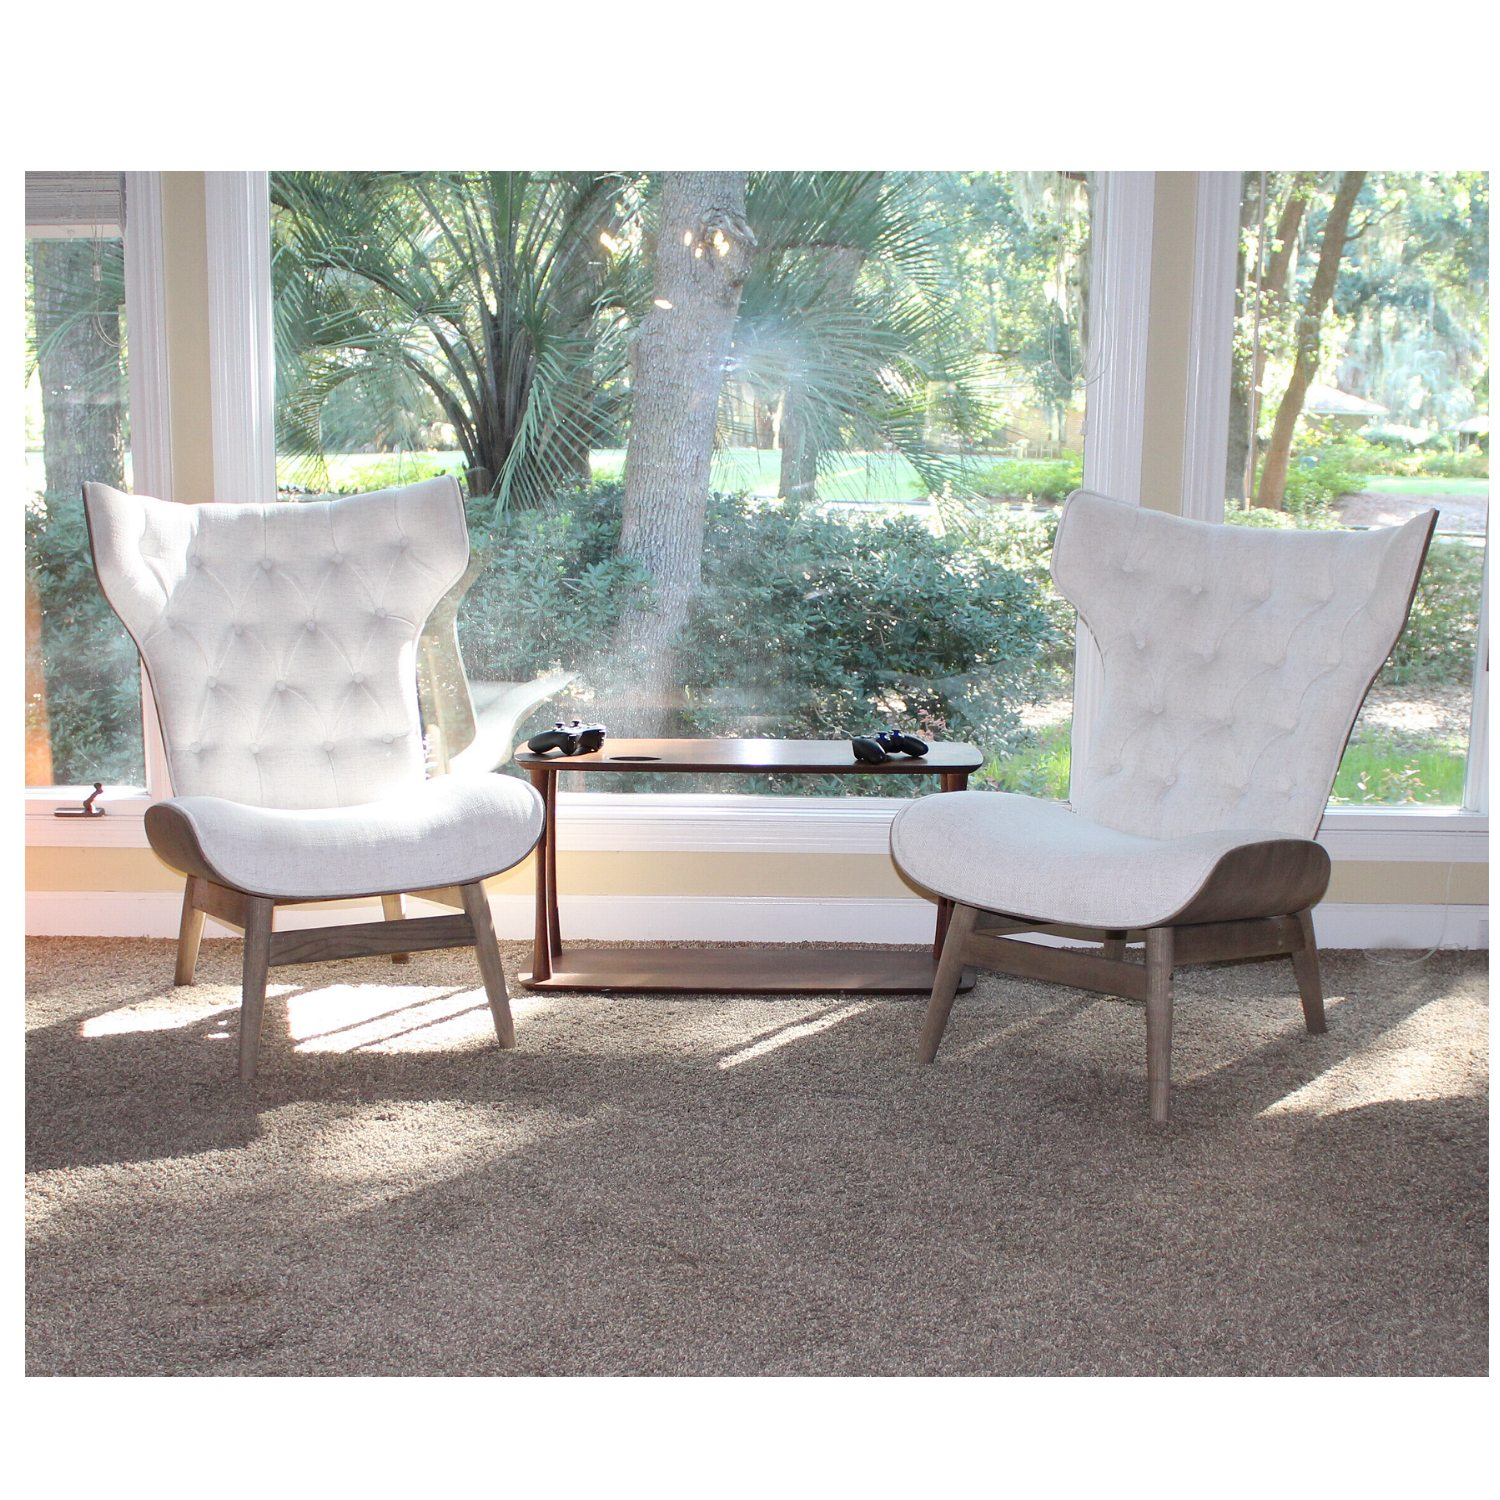 Mid Century Modern Chairs Baja Tufted Fabric And Natural Wood Sold As Pair The Kings Bay